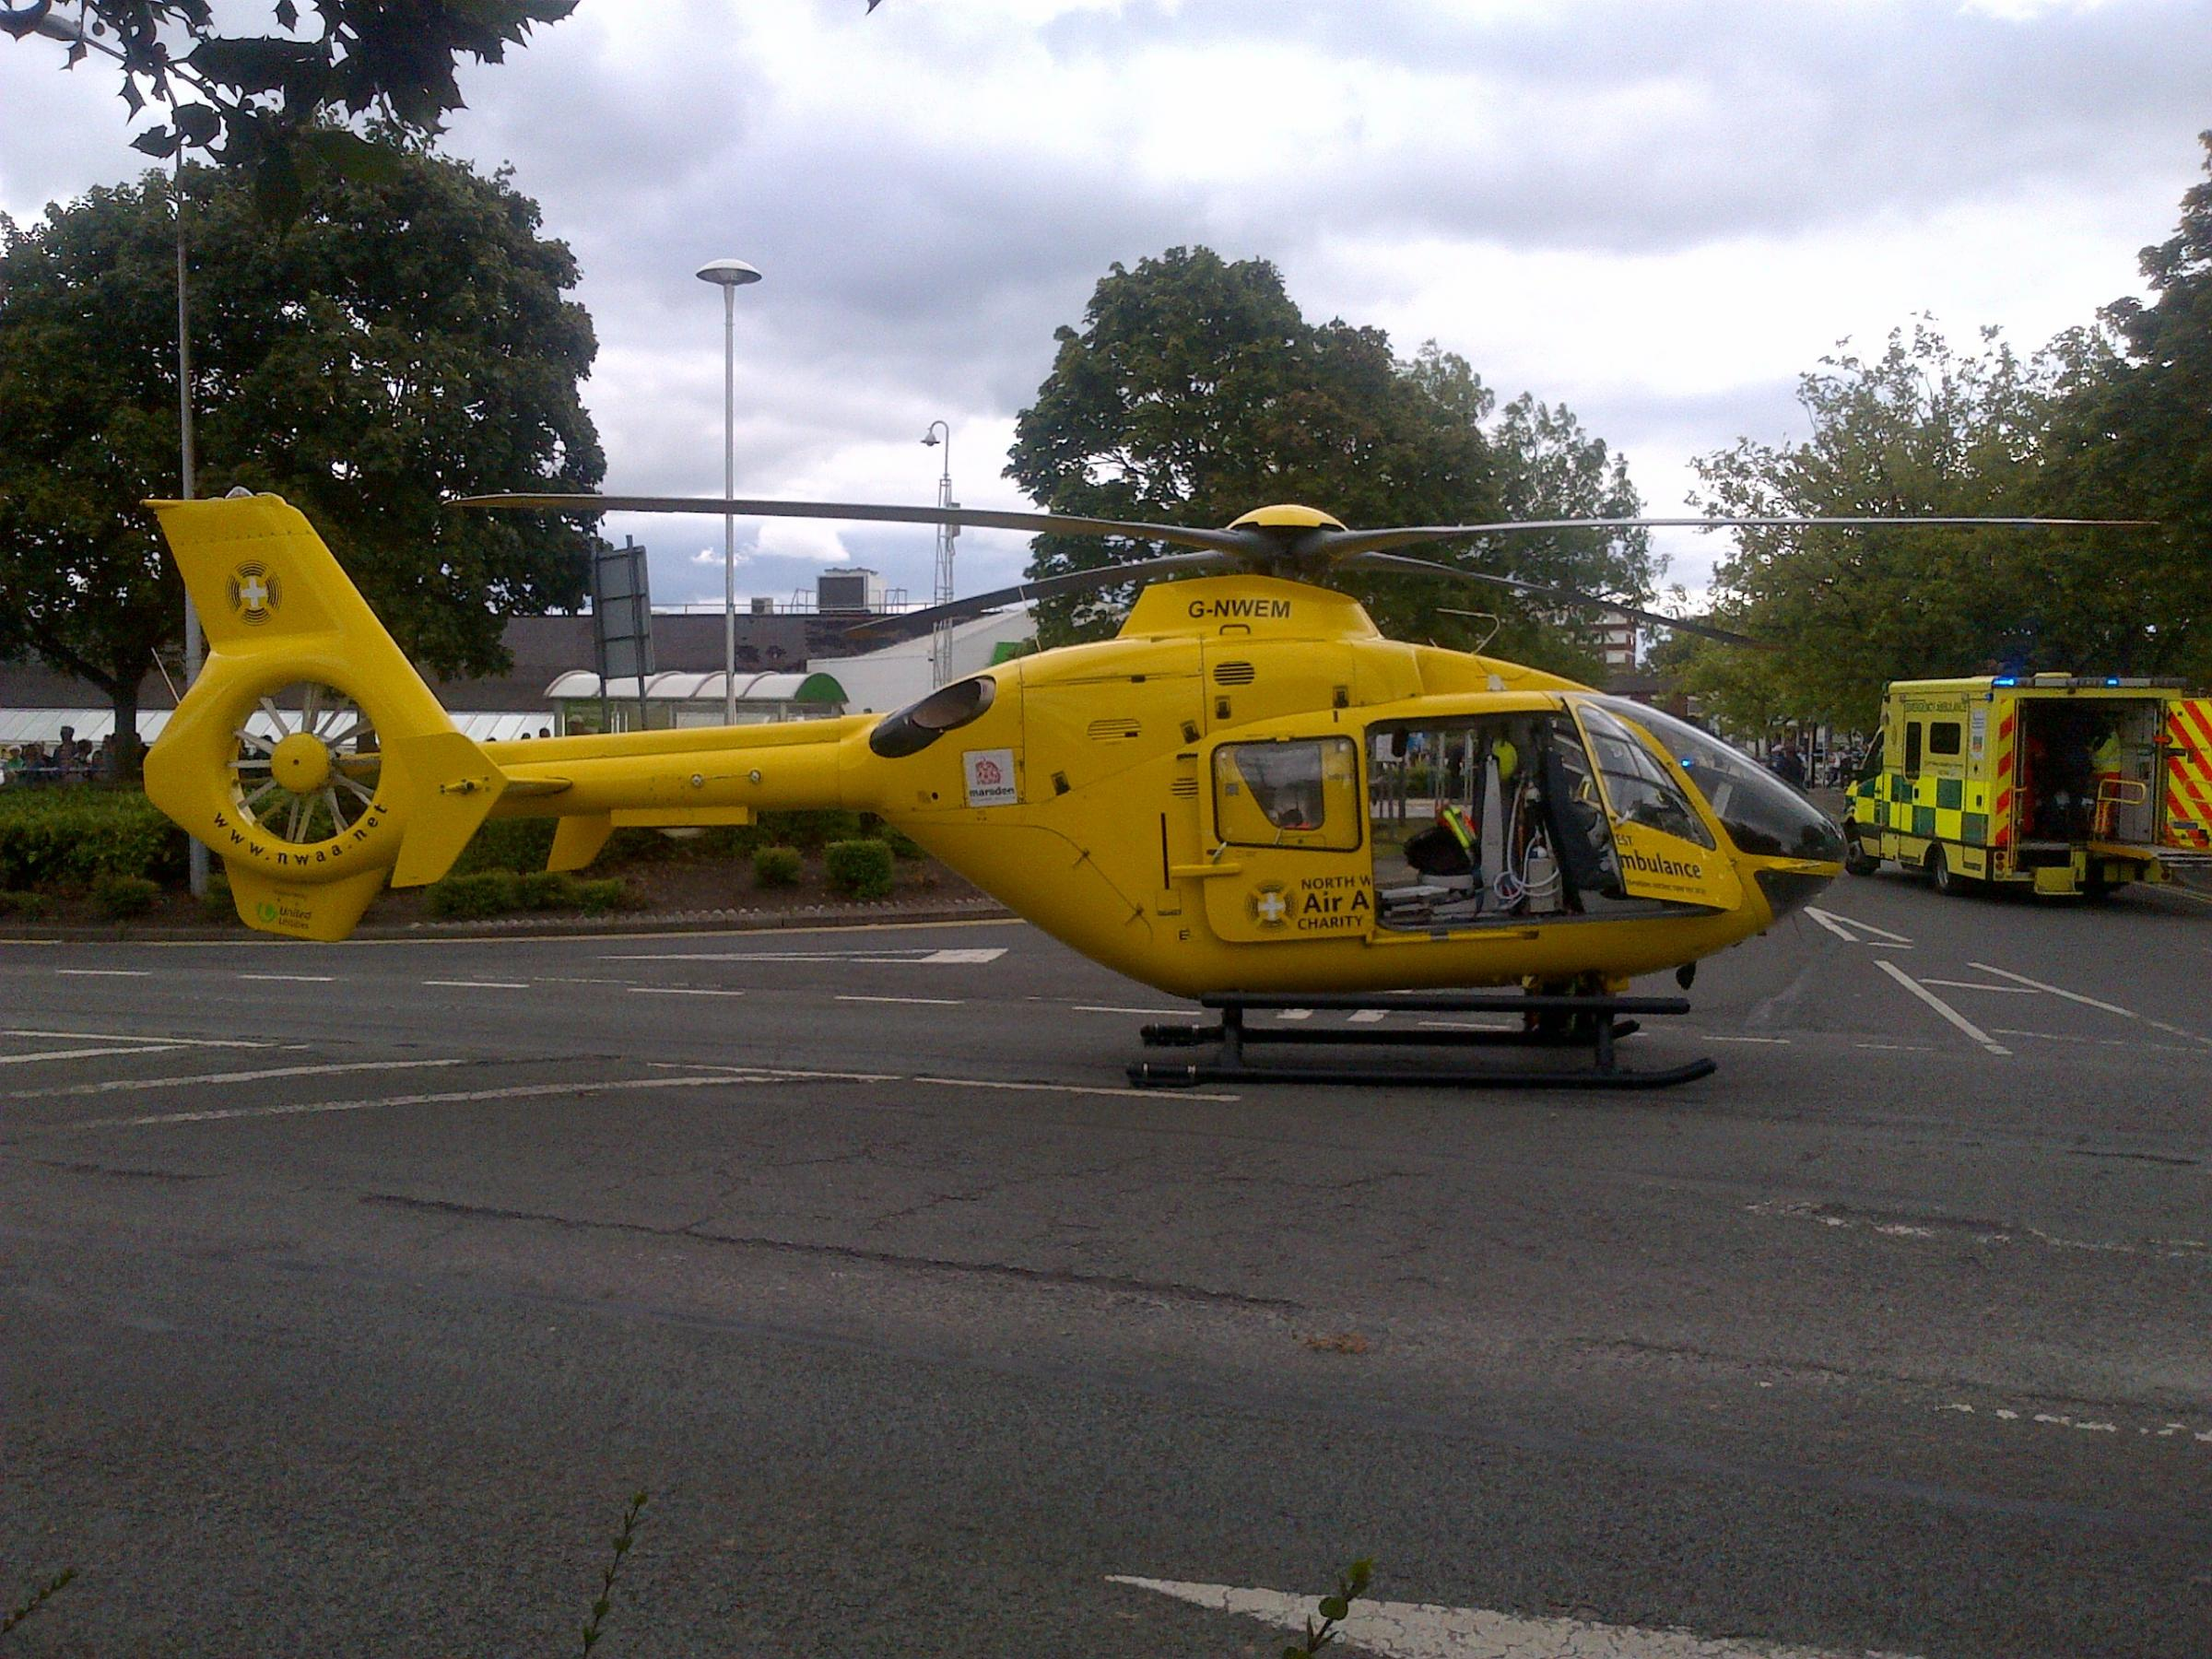 The North West Air Ambulance waits to airlift casualties to hospital following the attacks. Picture courtesy of Ian Williamson.